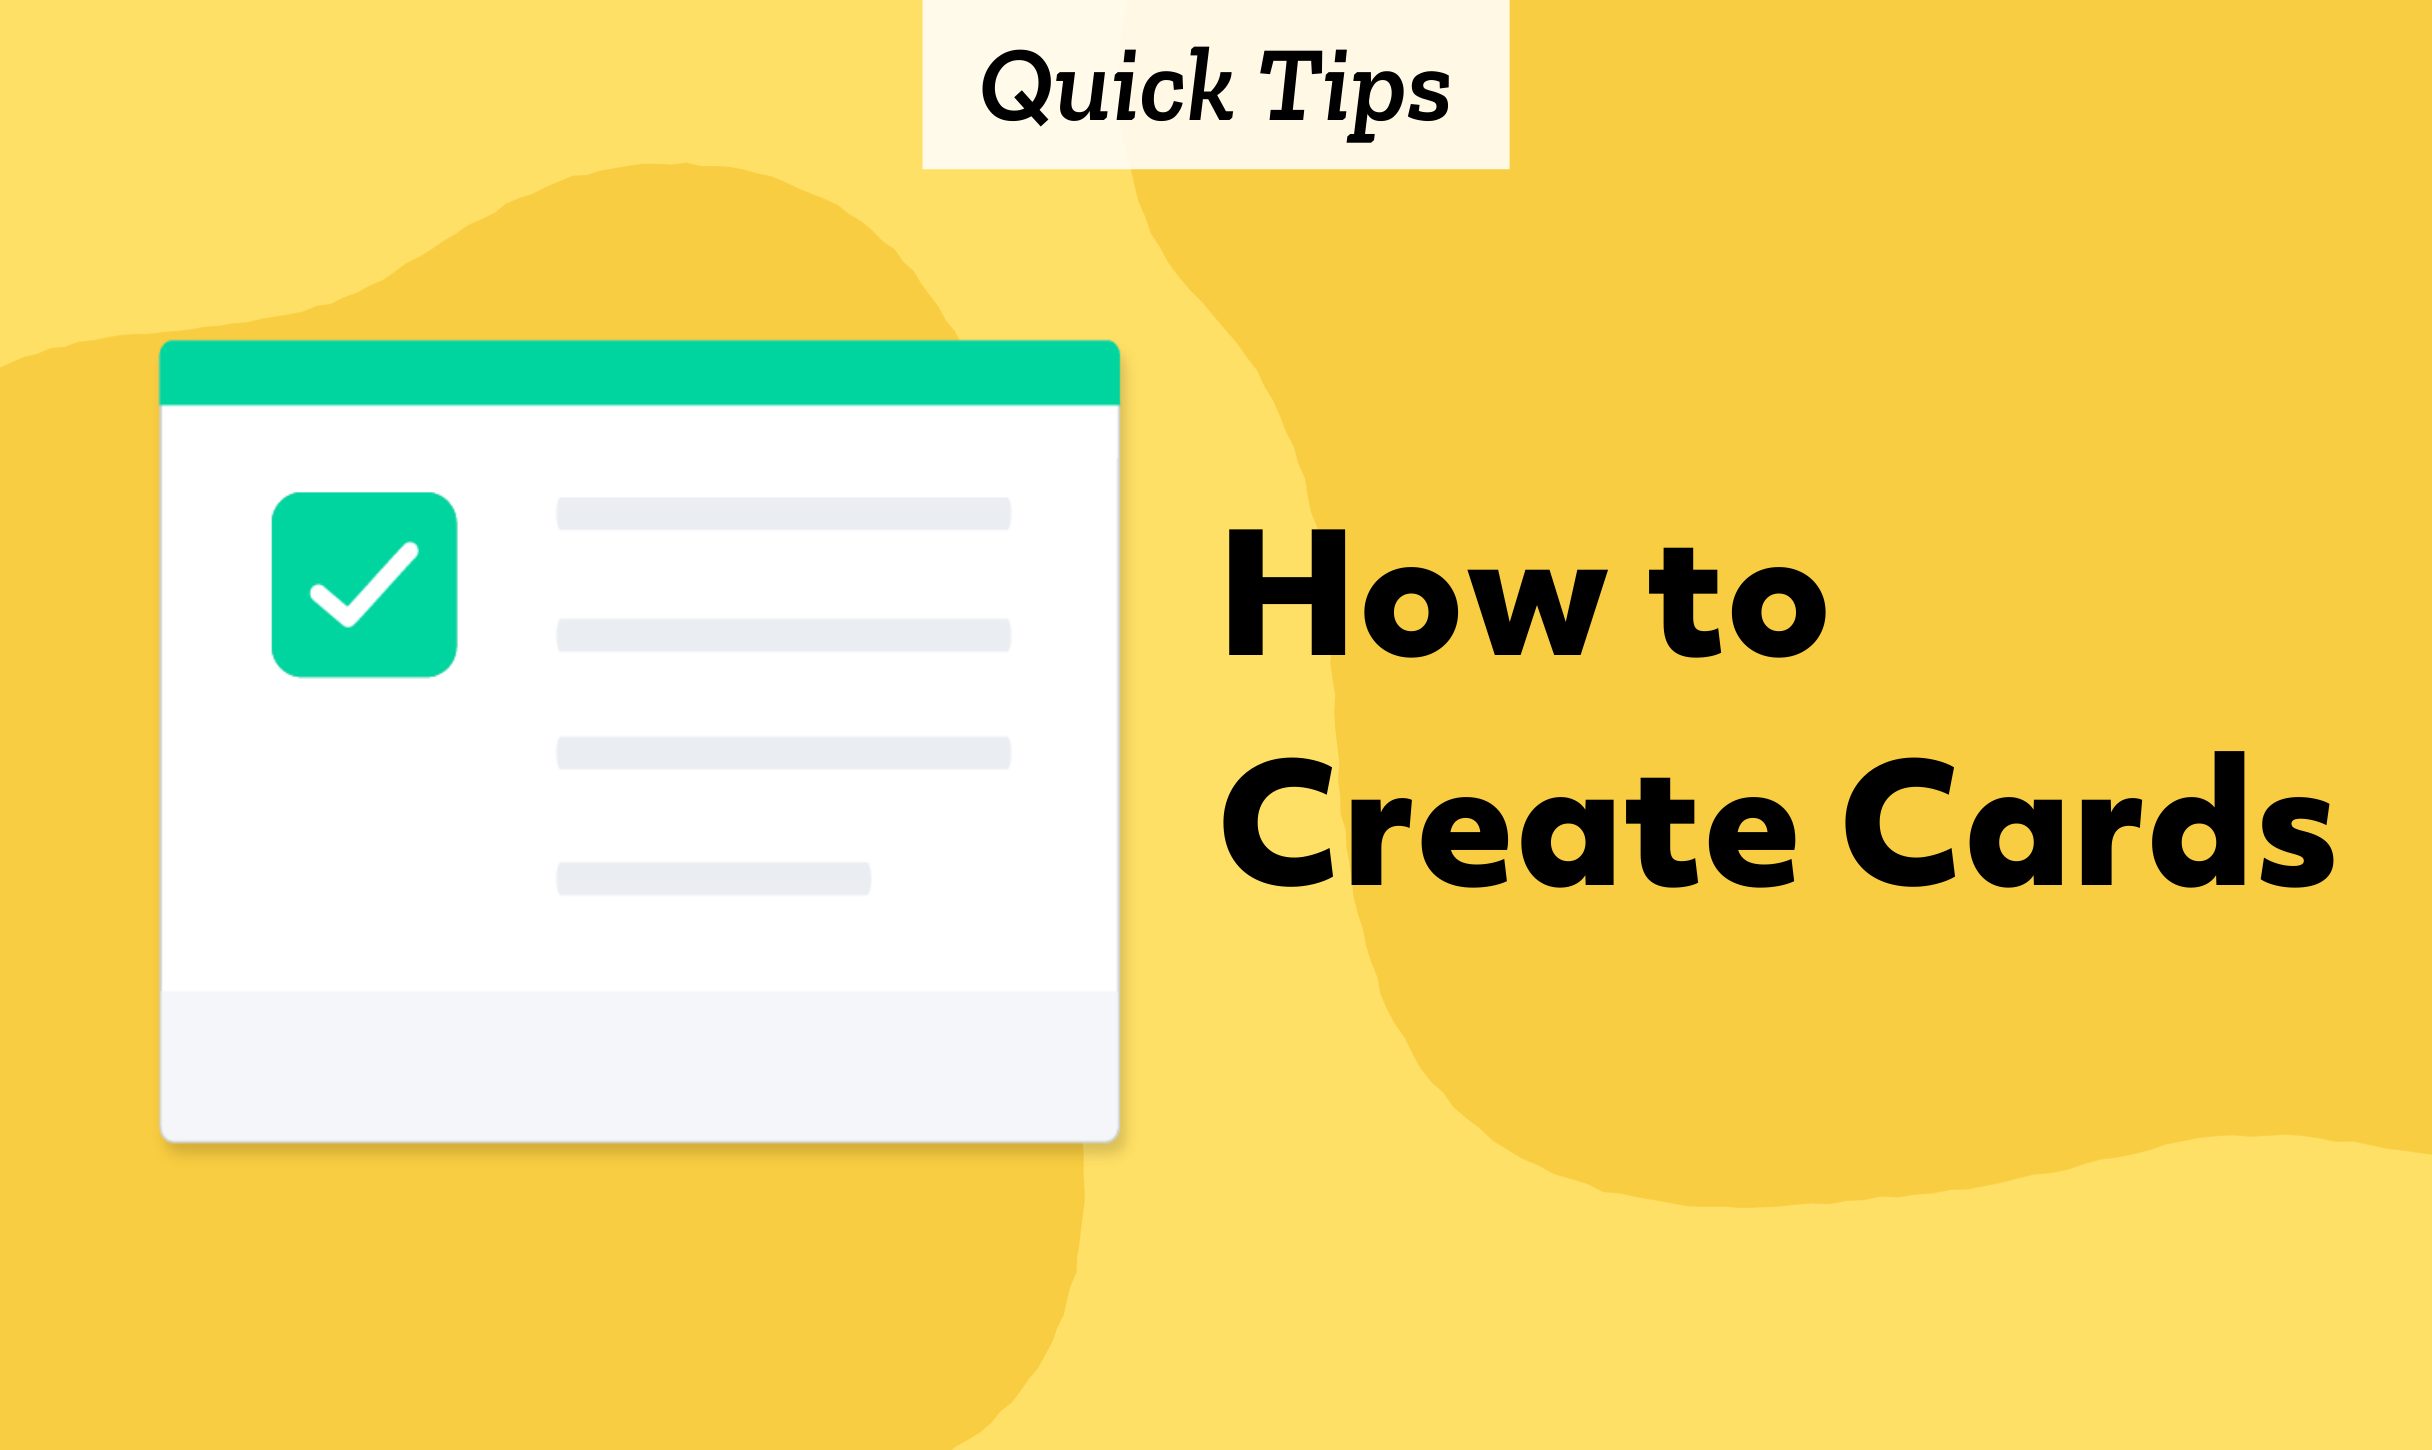 Quick Tips: How to Create Cards